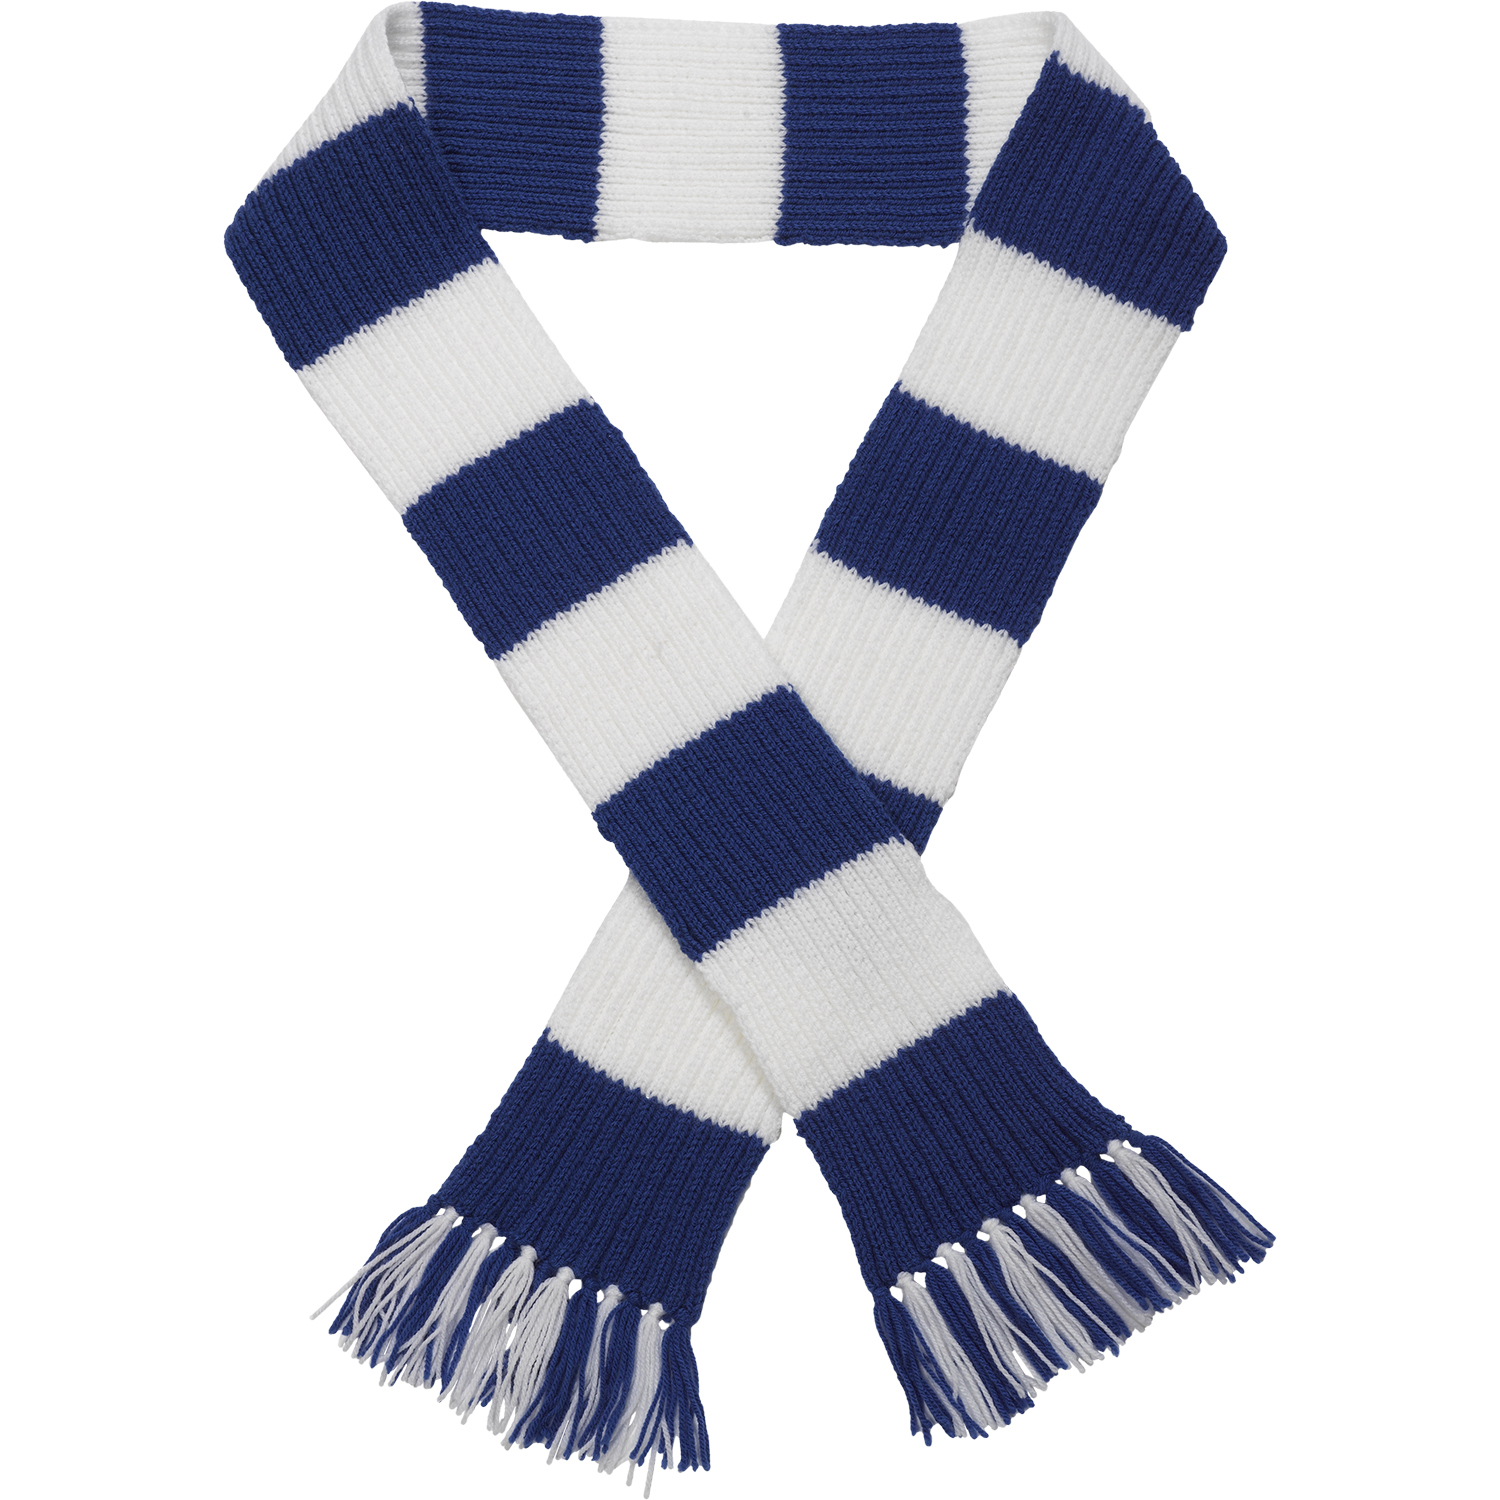 Knitting Pattern Wool Kits : Premier League Team Striped Football Scarf Knitting Pattern Wool Craft Hobby ...